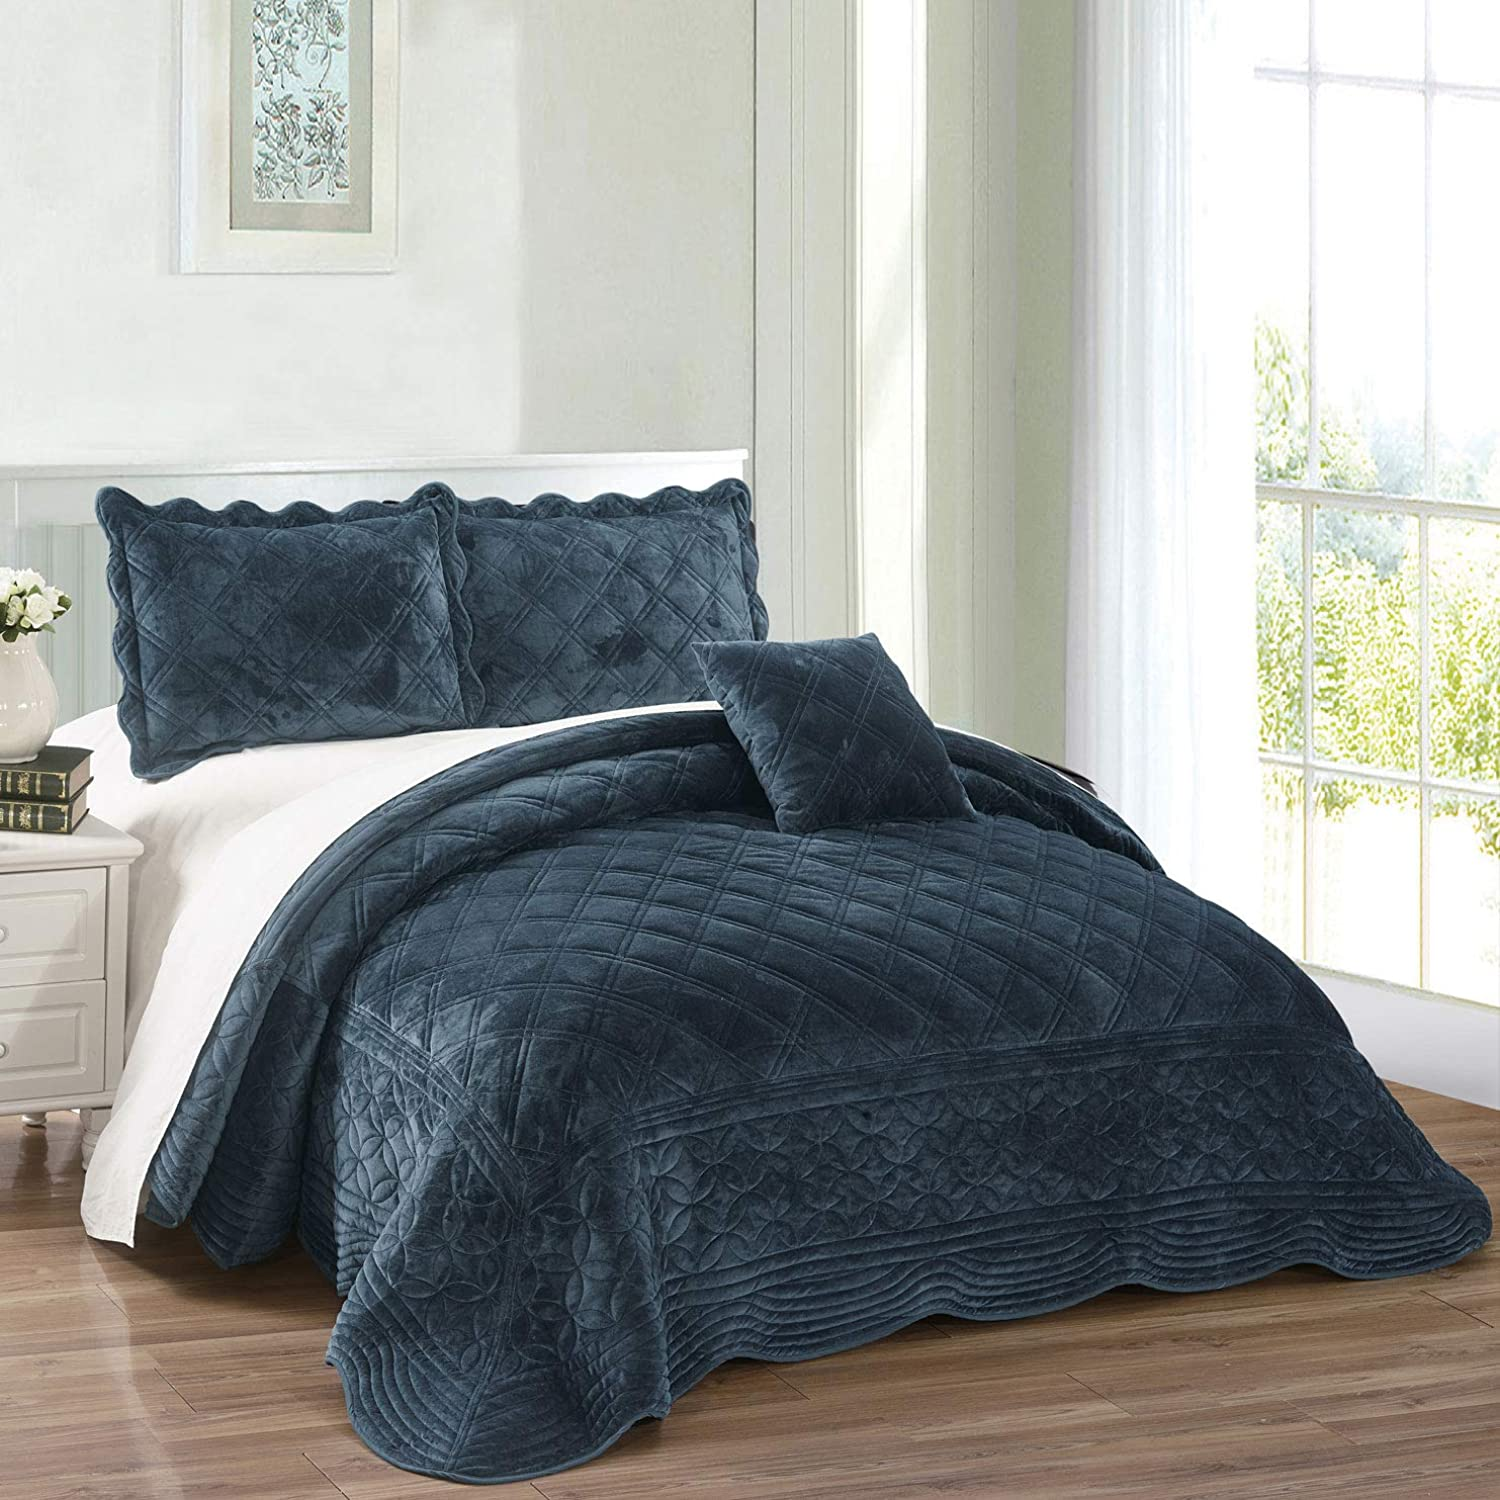 Serenta Super Soft Microplush Quilted 4 PCs Bedspread Set. Queen, bluee Sapphire